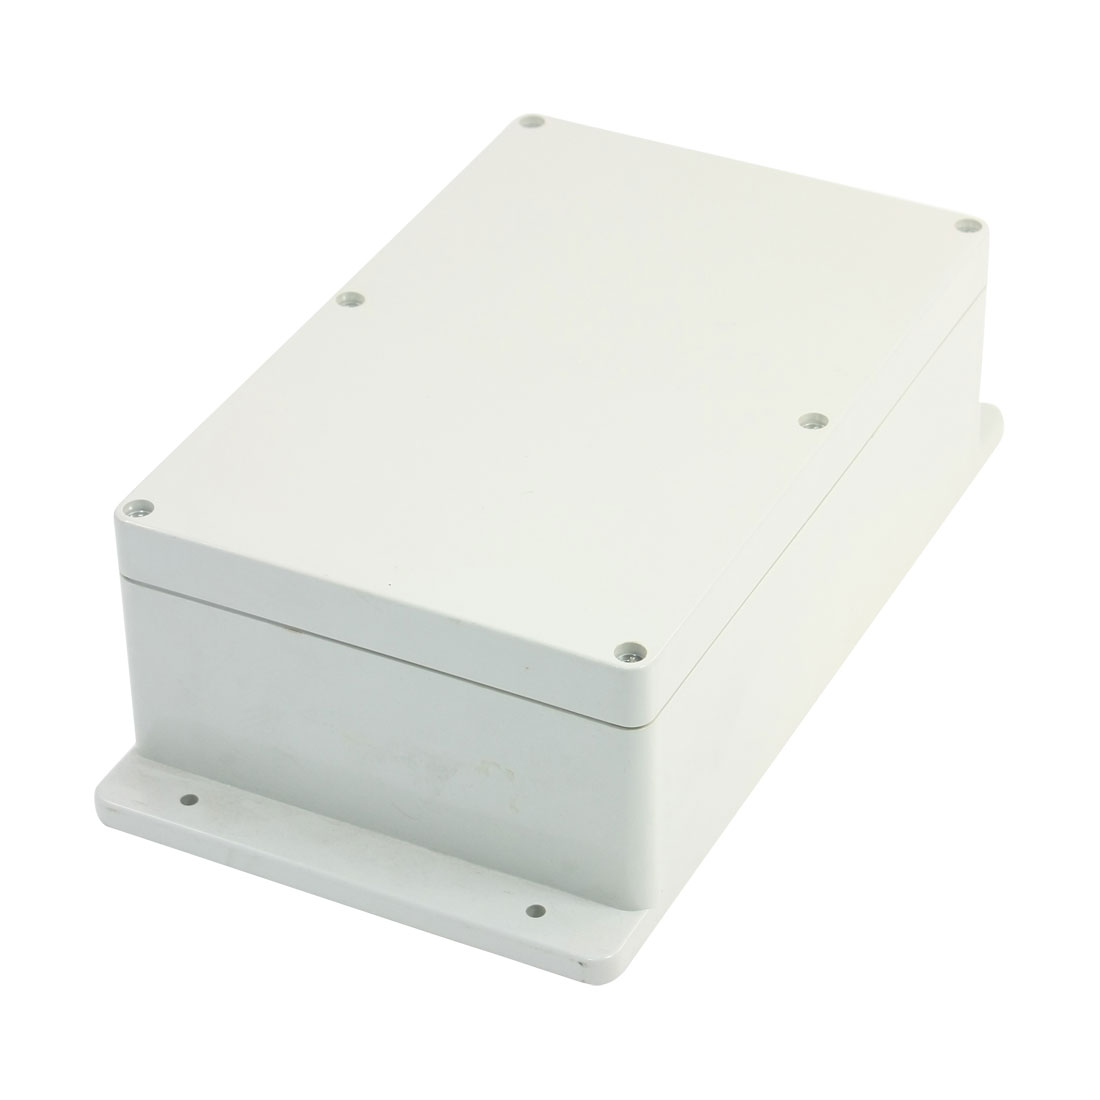 230mmx150mmx85mm-Waterproof-Plastic-Enclosure-Power-Switch-Junction-Box